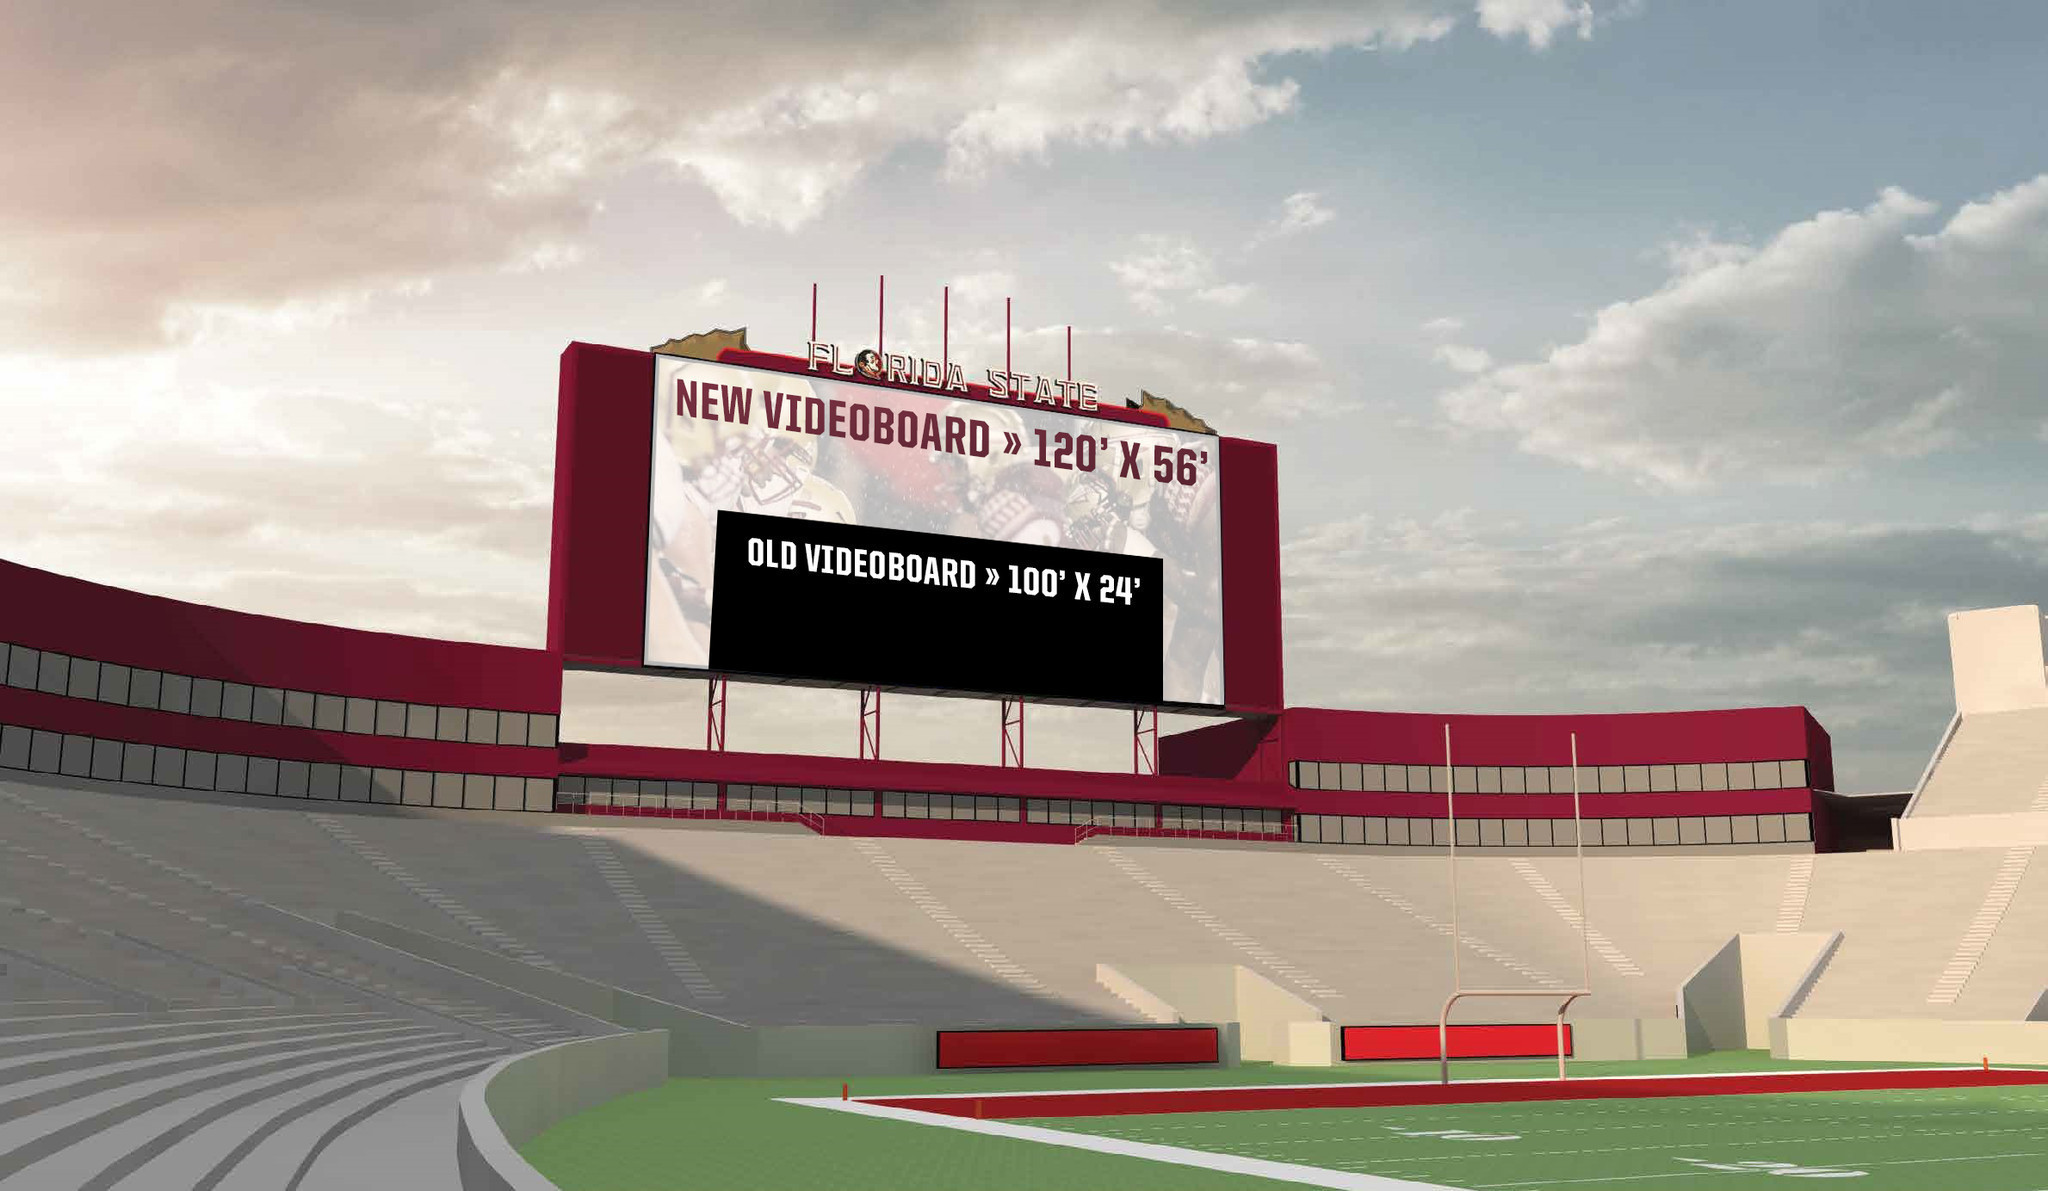 http://www.trbimg.com/img-56f58e03/turbine/os-florida-state-plan-video-board-doak-campbell-stadium-20160325